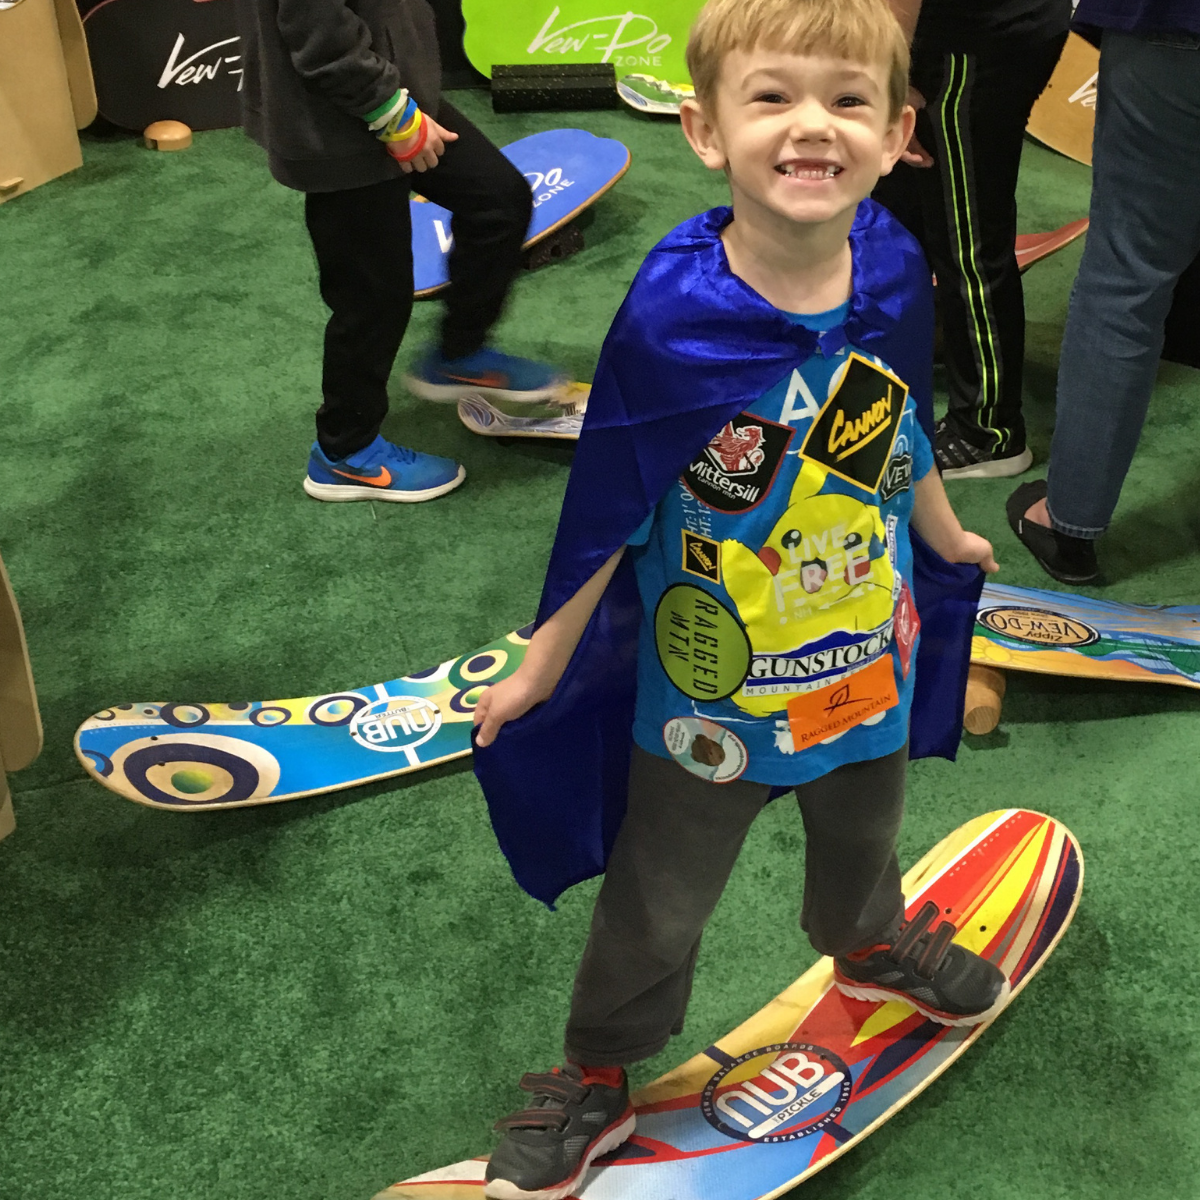 young boy at indoor expo on a snowboard